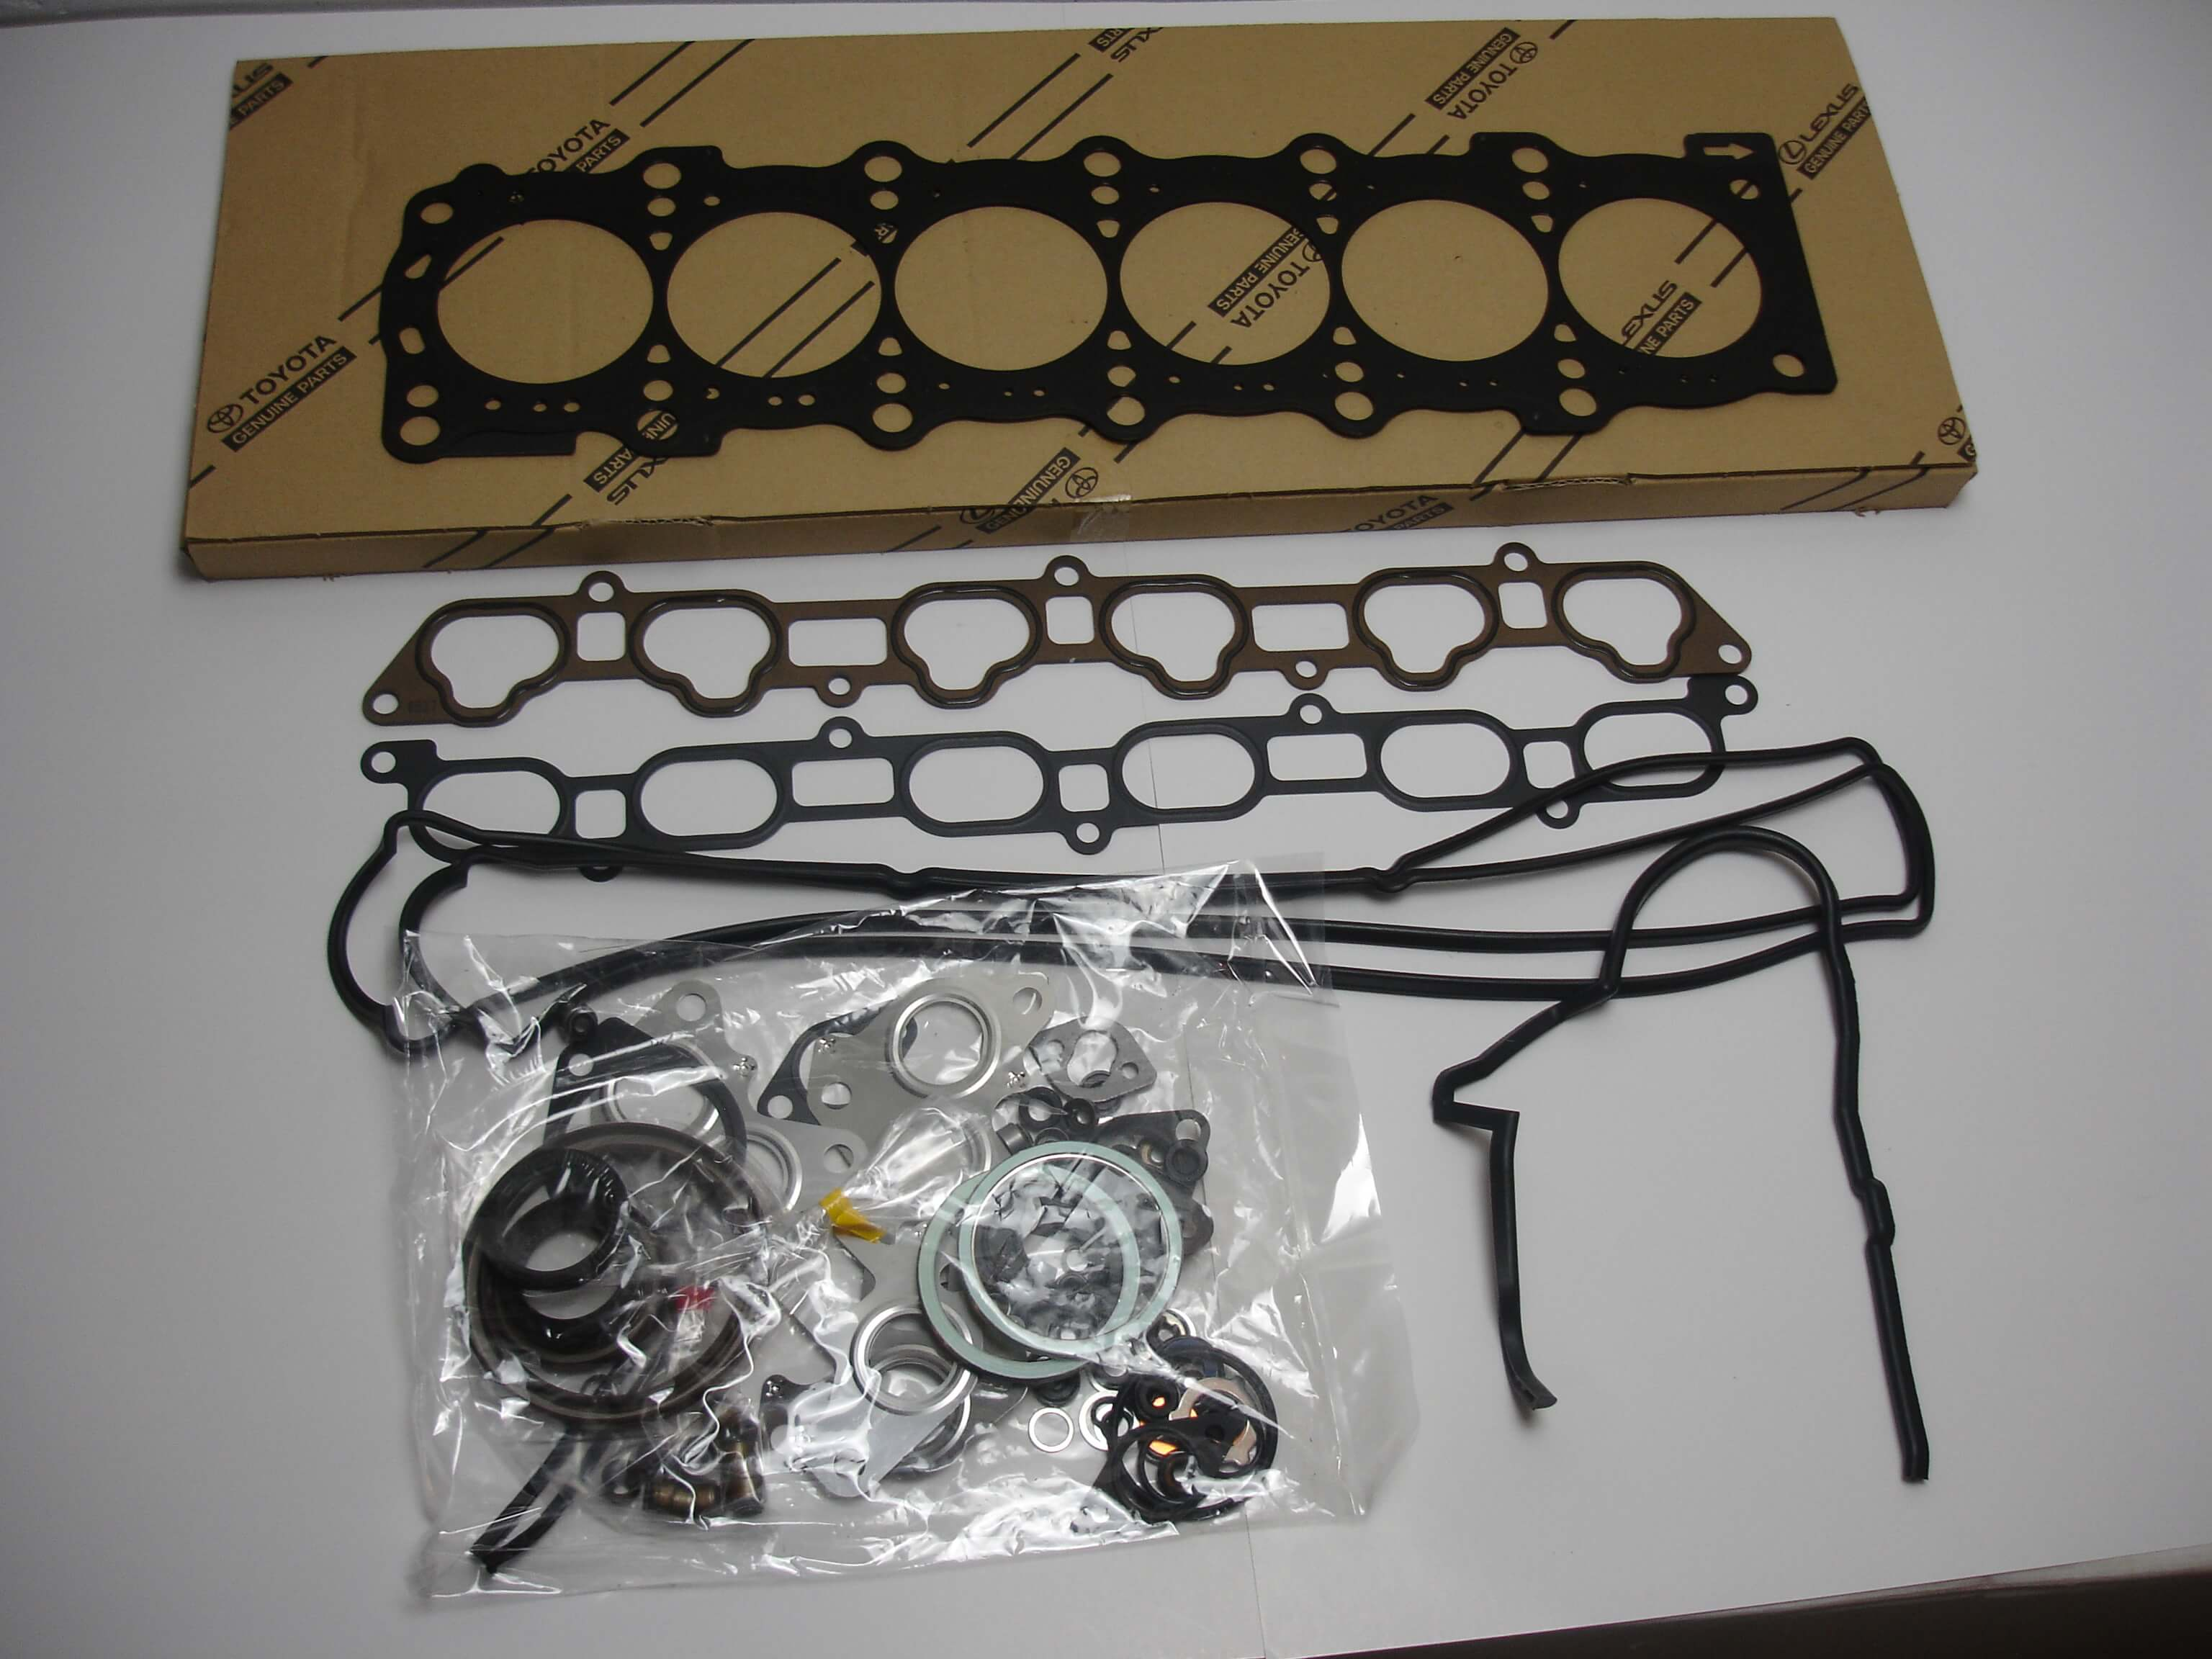 Toyota Oem 1jz Gte Vvti Engine Overhaul Gasket Kit 04111 46111 96 04 Wiring Harness Plugs